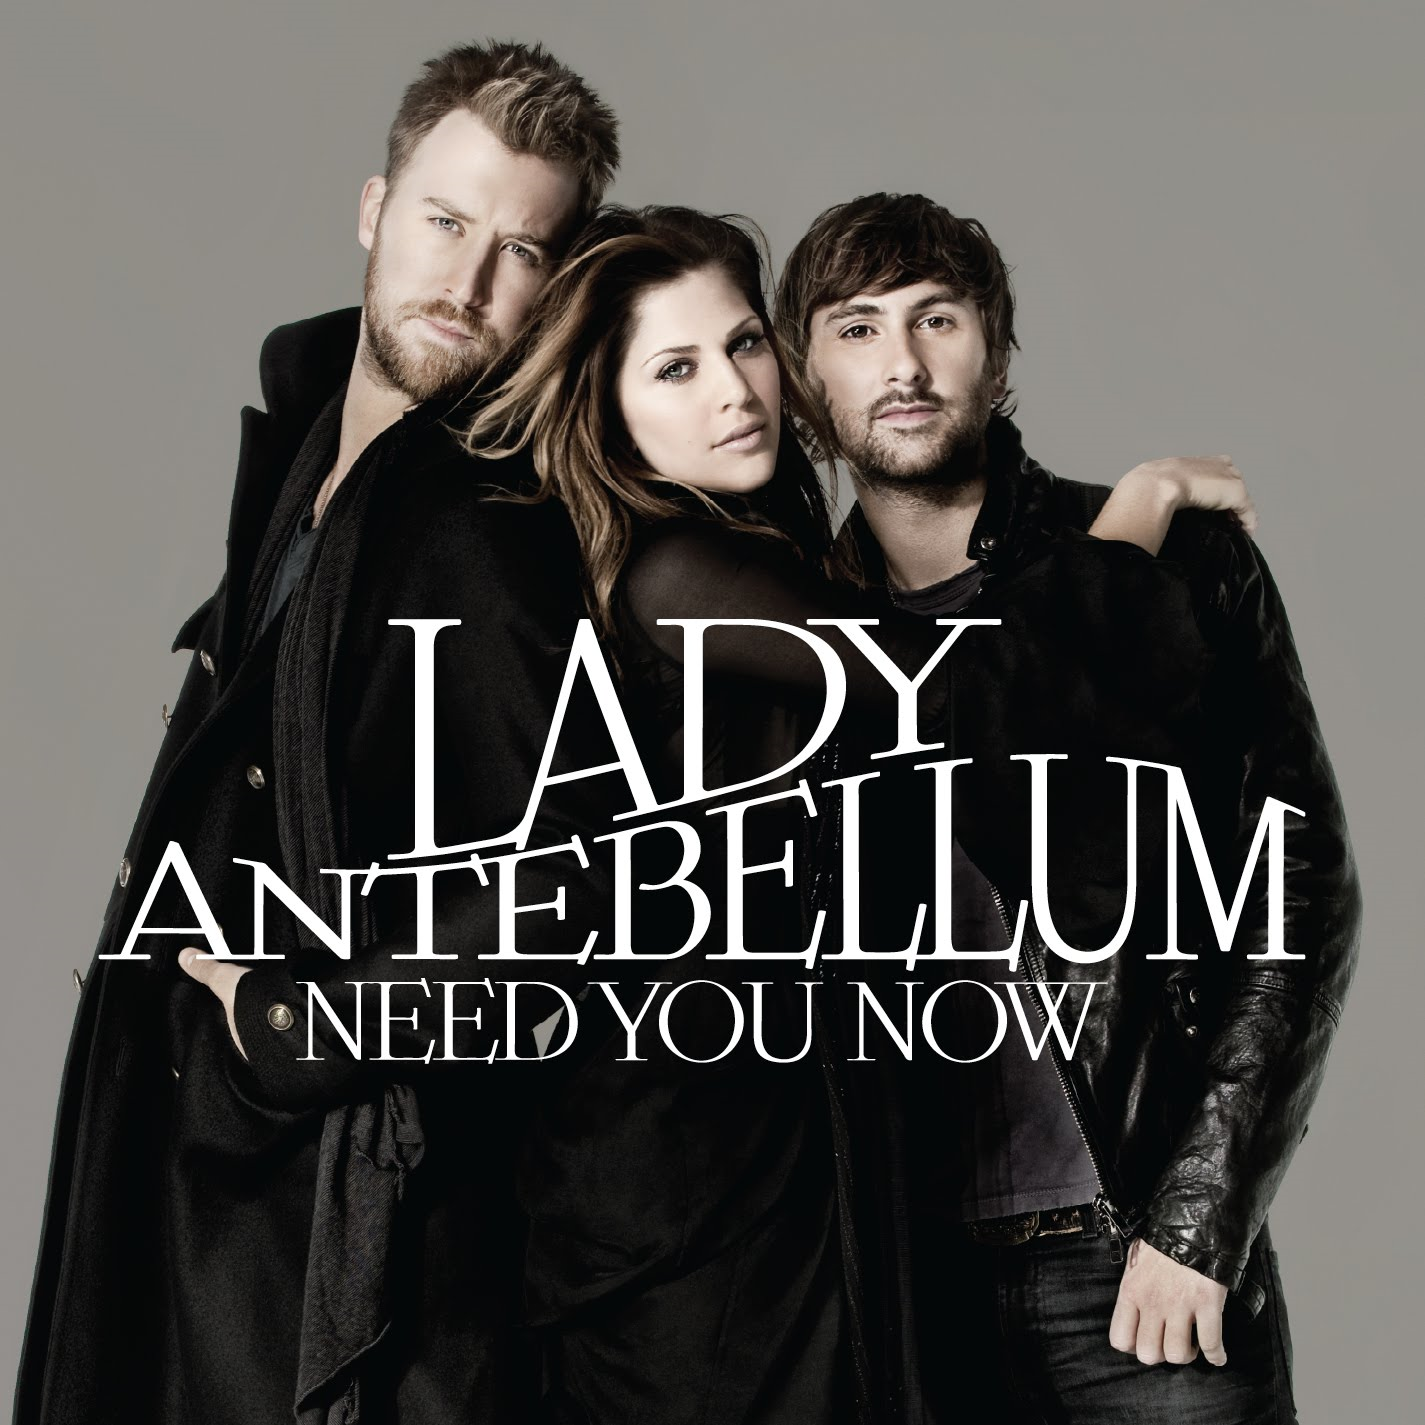 Lady Antebellum - Need You Now (Jason Nevins Dance Remix)